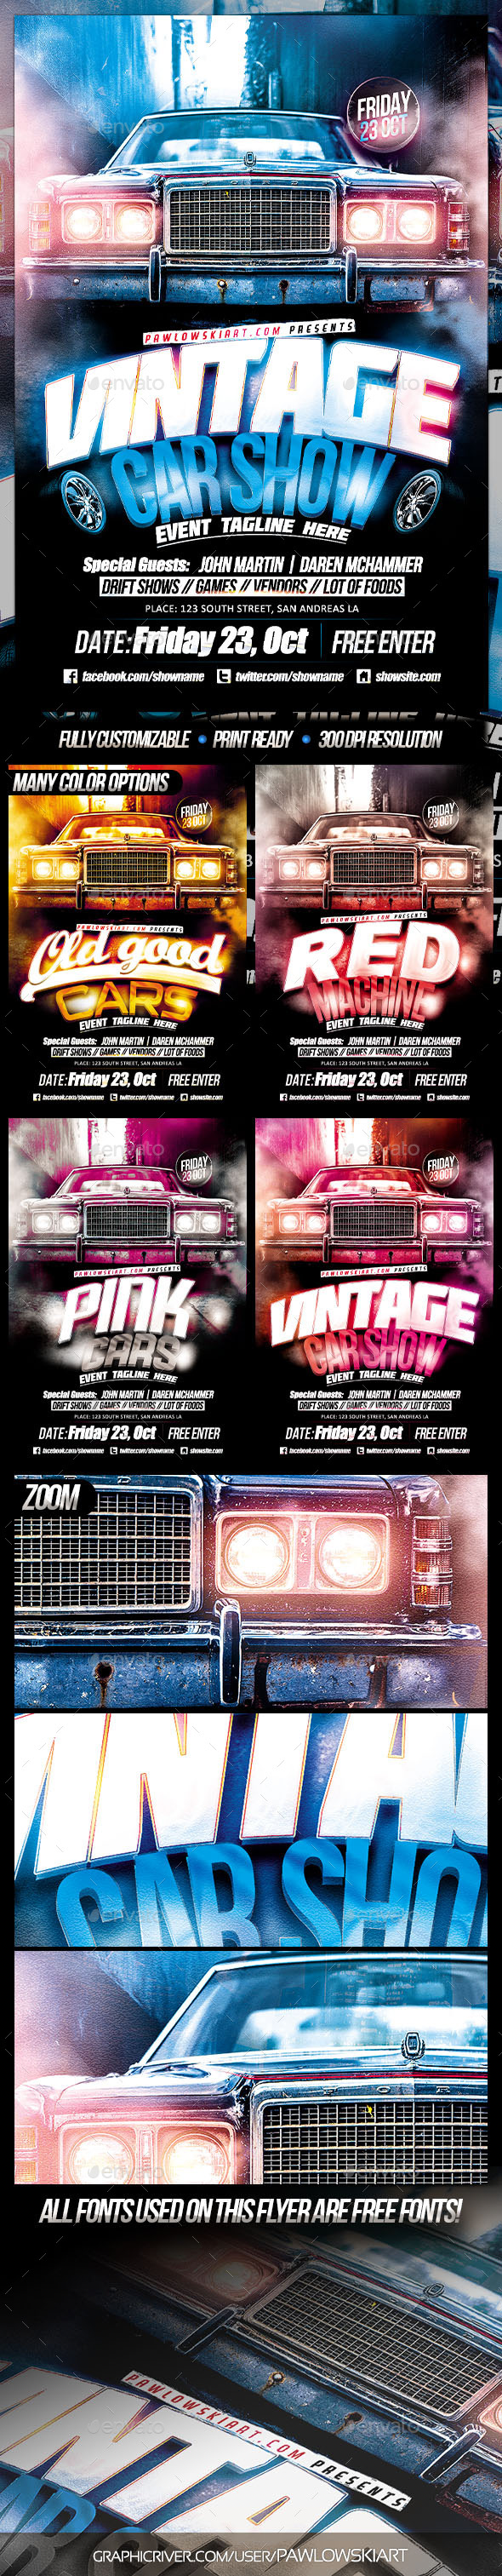 Muscle Car Show Poster Template Free  U00bb Dondrup Com